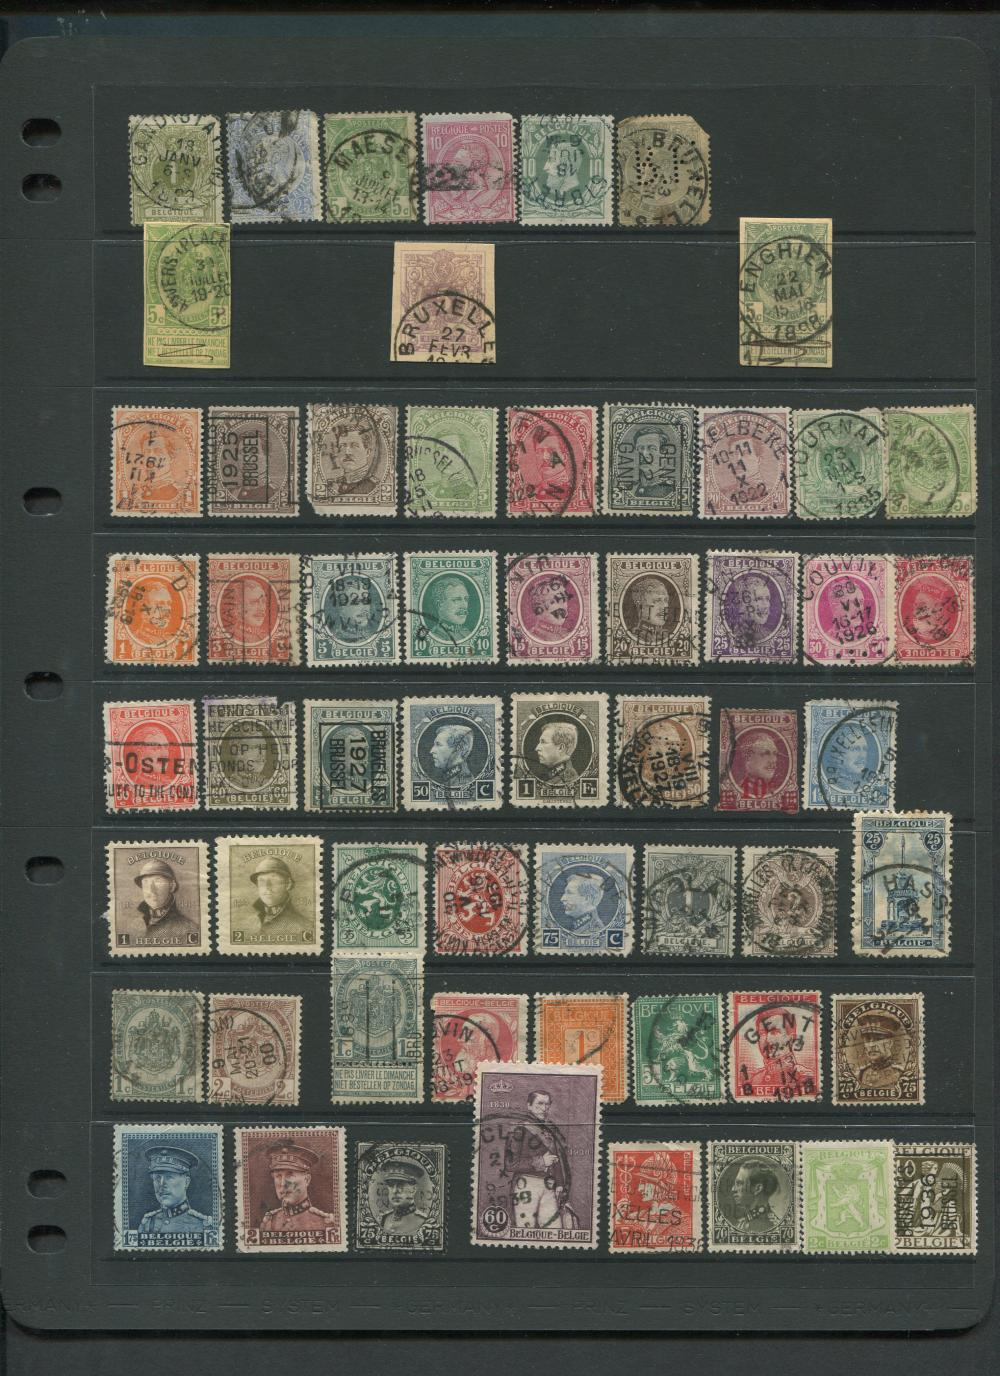 Belgium Stamp Collection From 1869